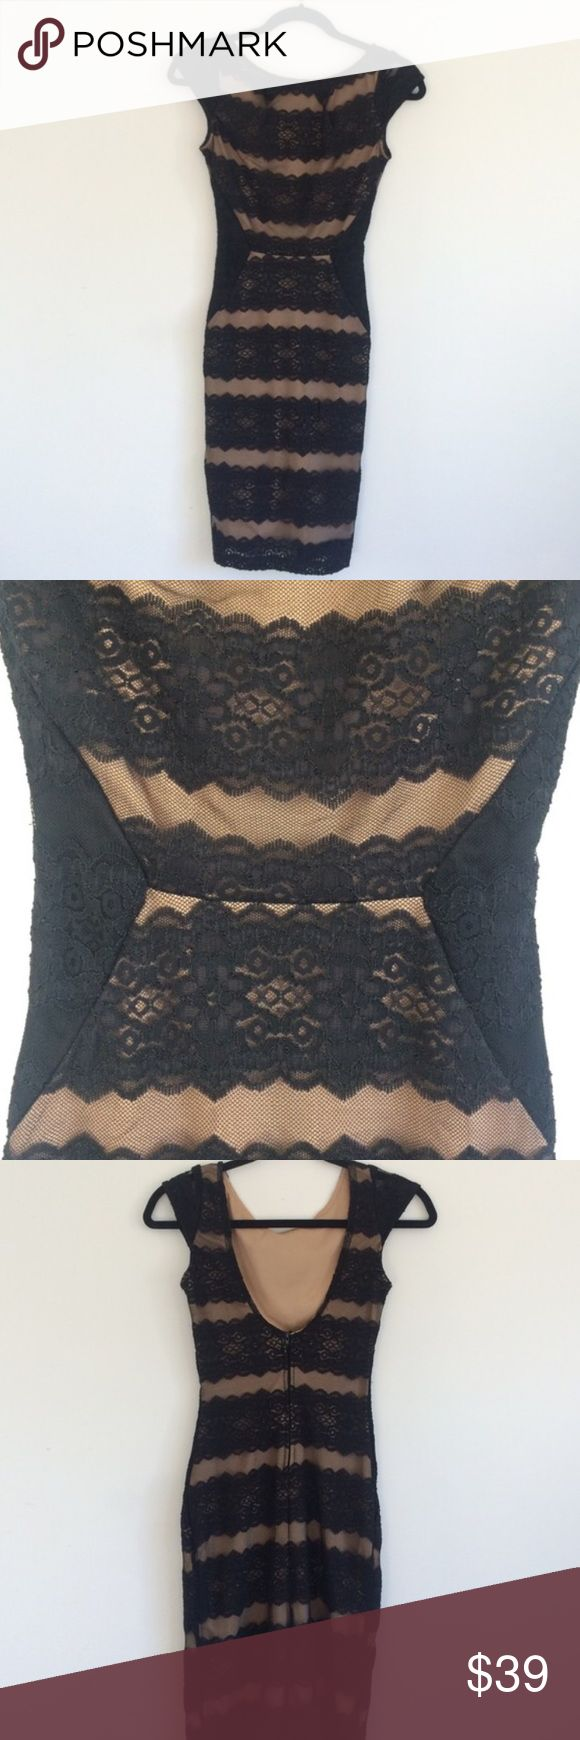 Lace Bodycon Stunner Body hugging black lace dress with nude lining. Zips up in the back and fits like an xs/s or size 0. Worn once to a wedding, in perfect condition. Dresses